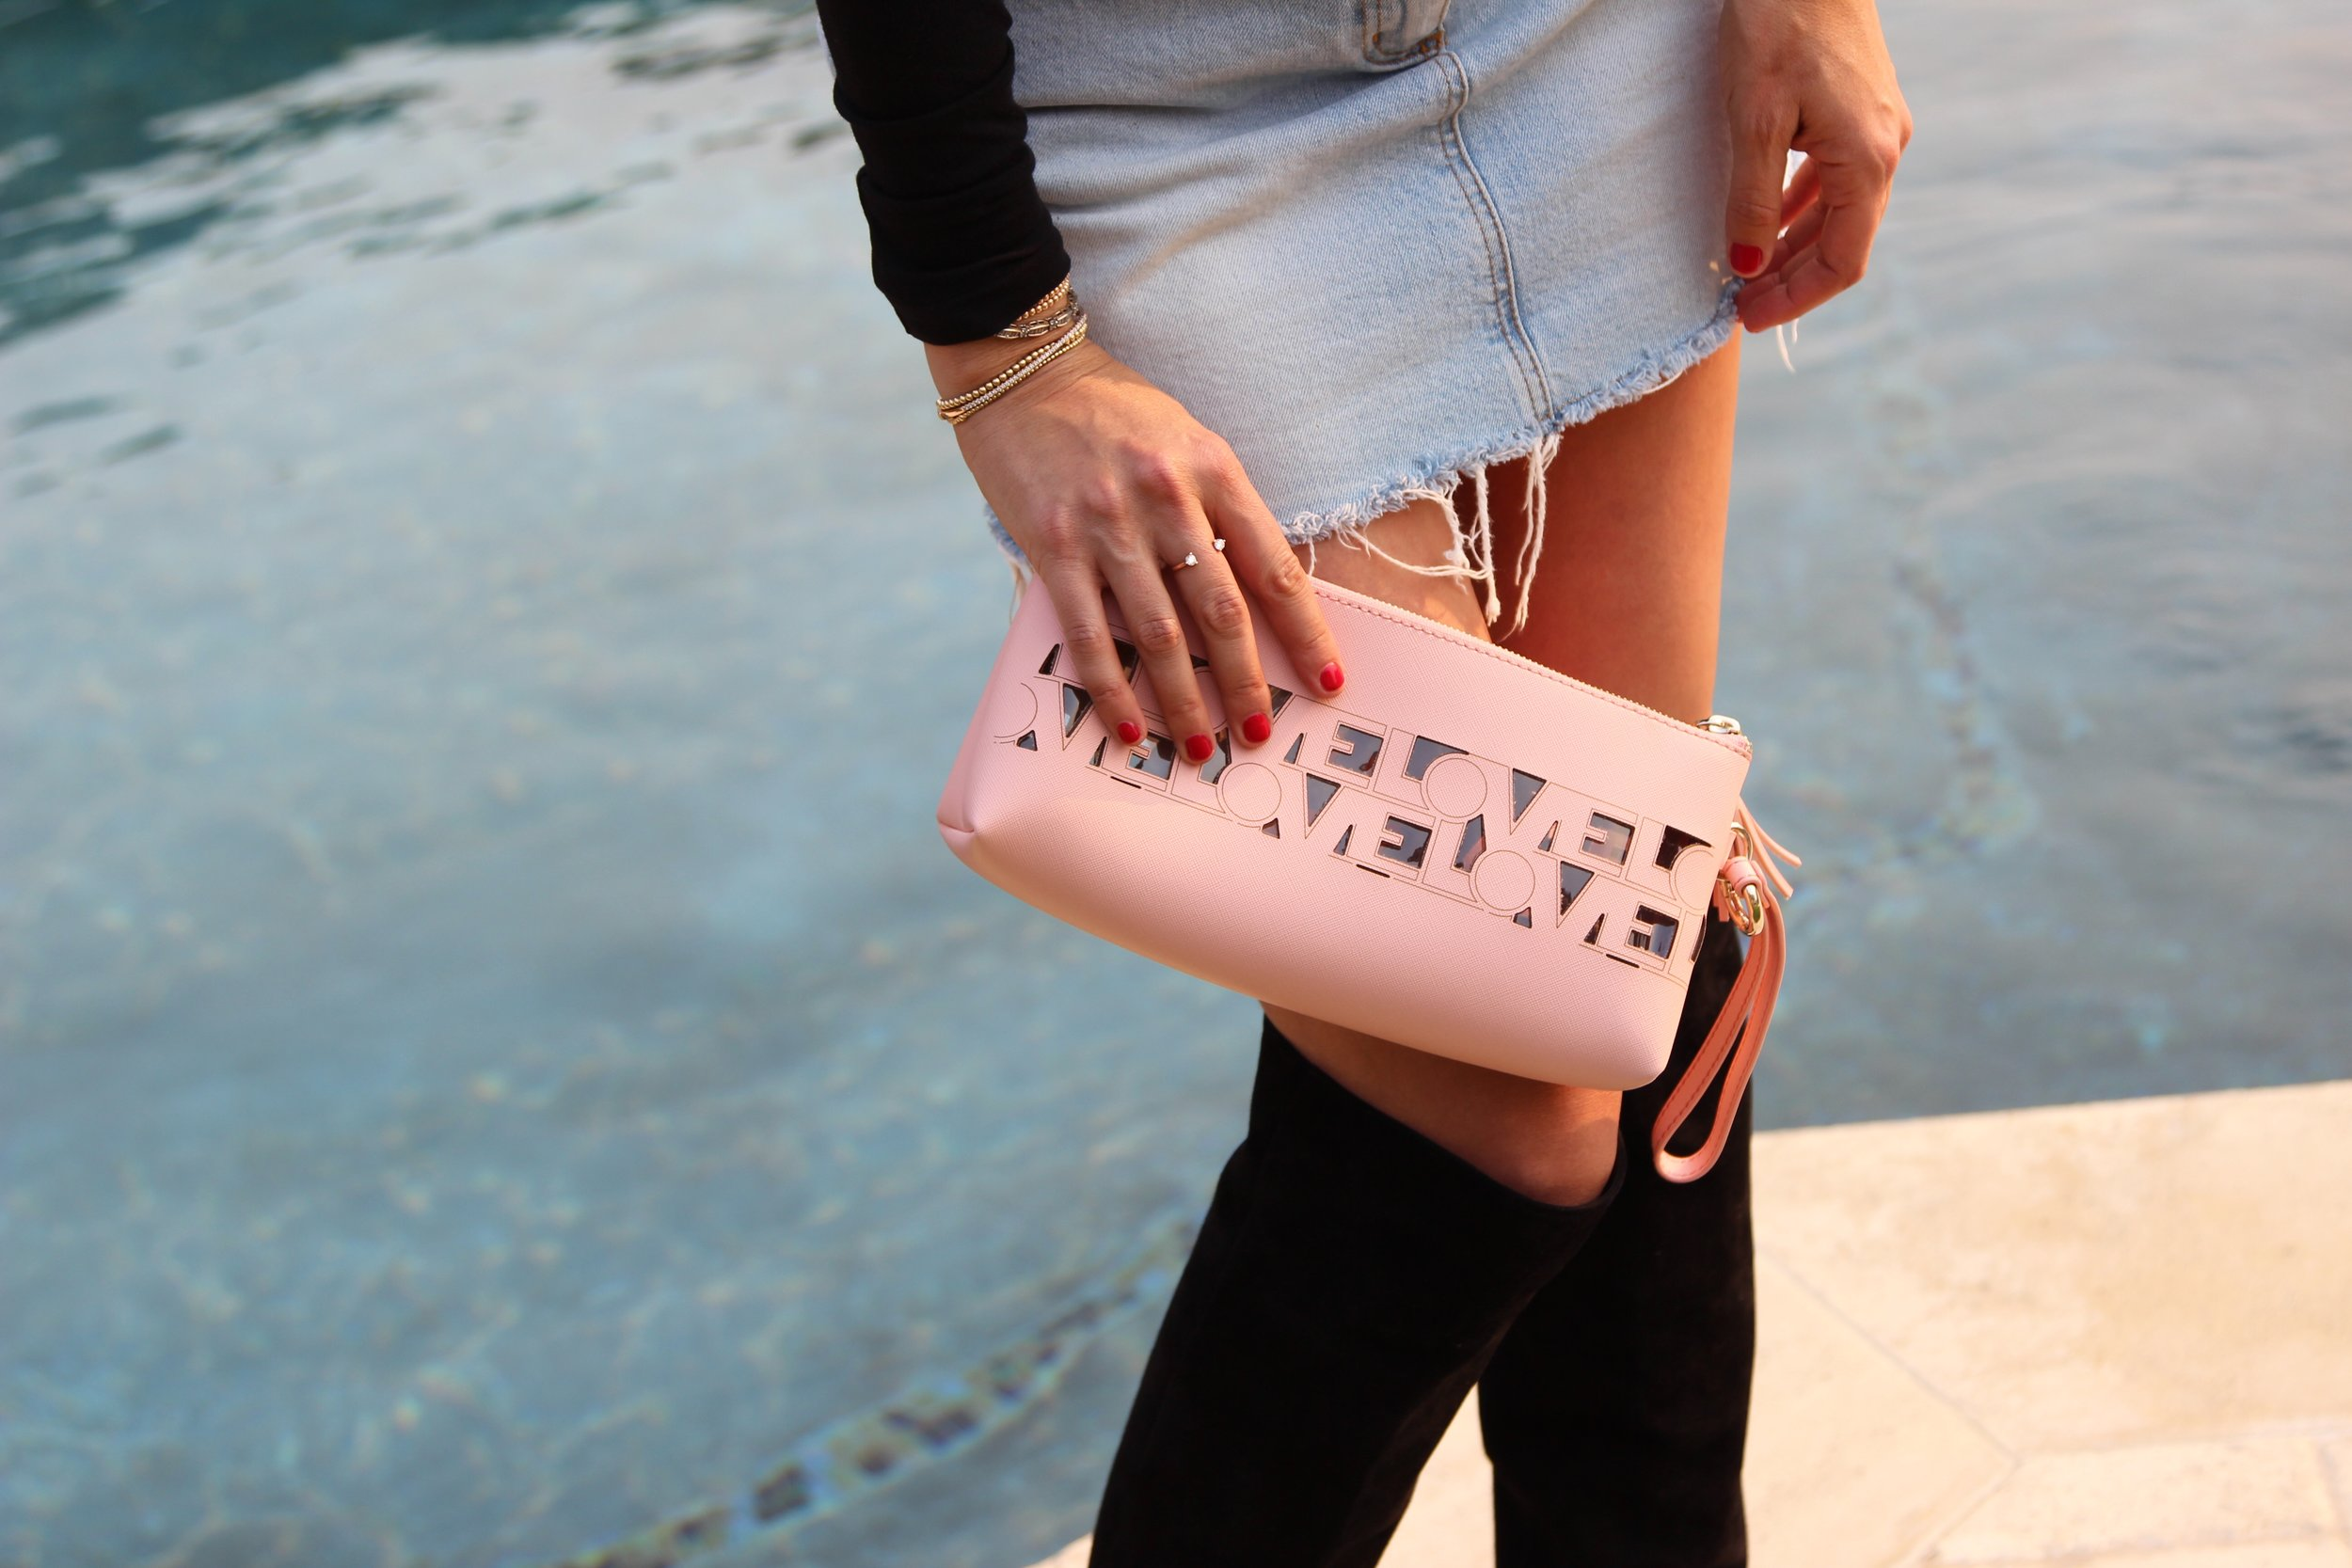 Holding Pink Clutch.jpg